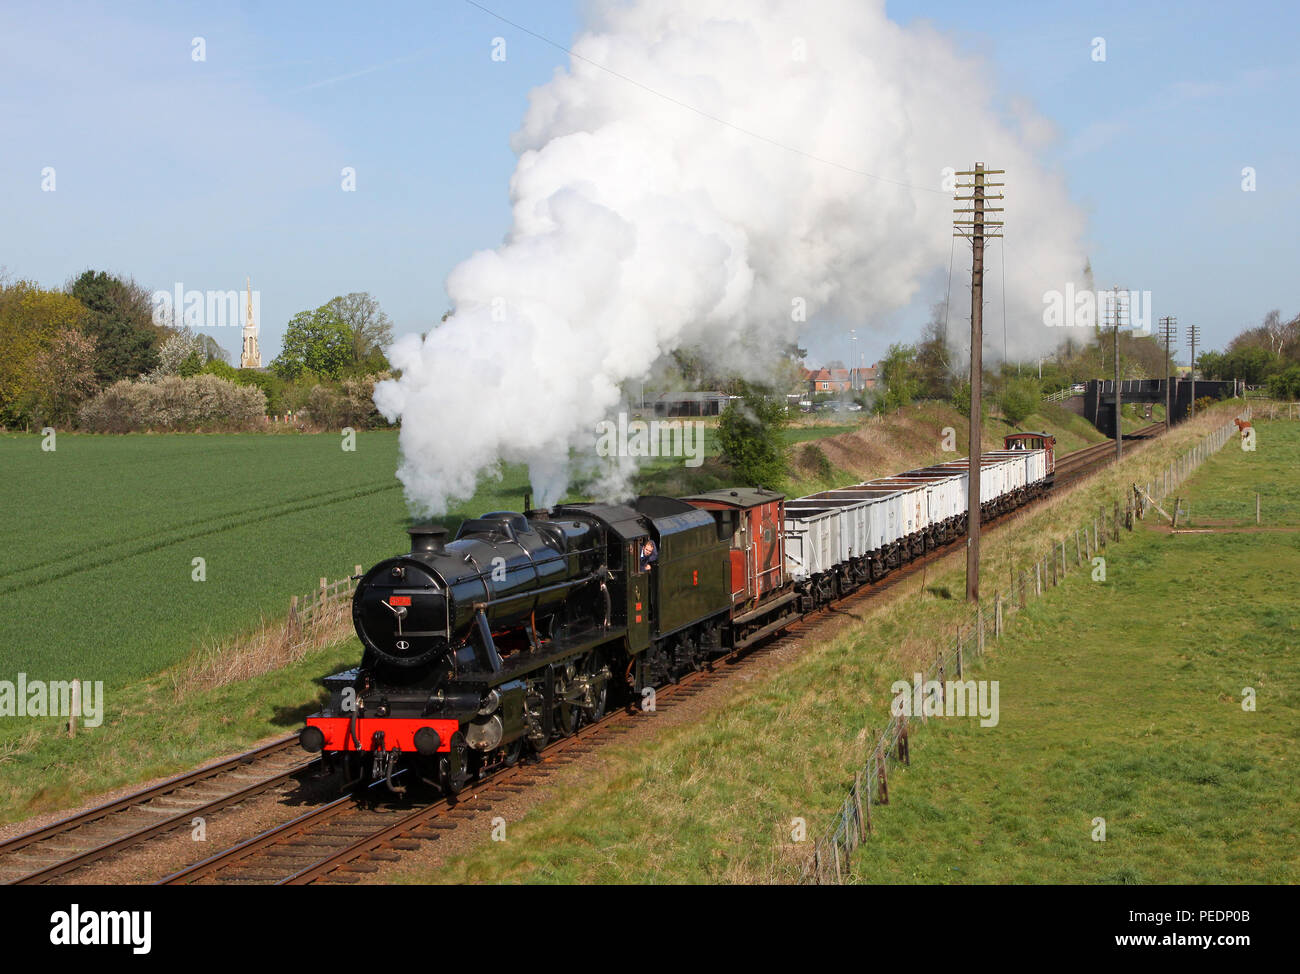 45160 Woodthorpe on the Great Central Railway 10.4.11 - Stock Image